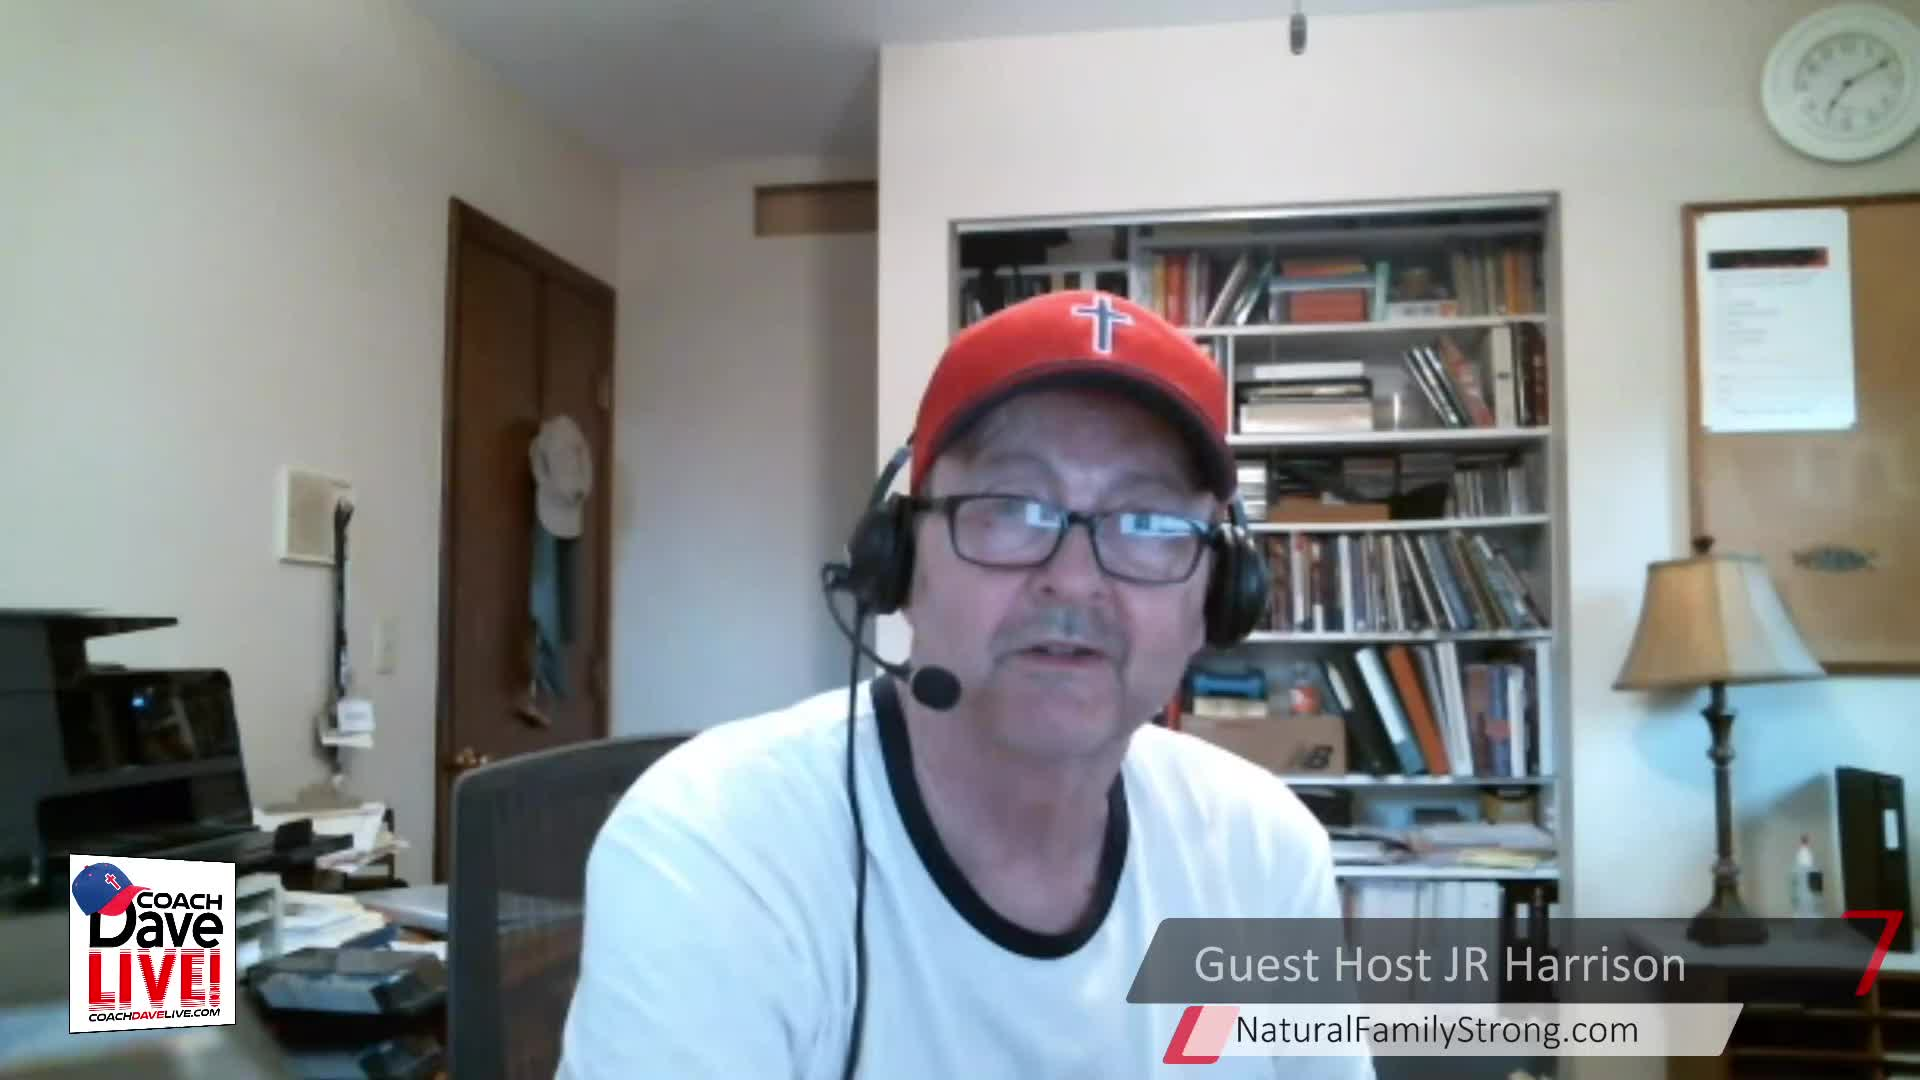 Coach Dave LIVE | 5-21-2021 | FFF: GUEST HOST JR HARRISON ON FAMILY - AUDIO ONLY